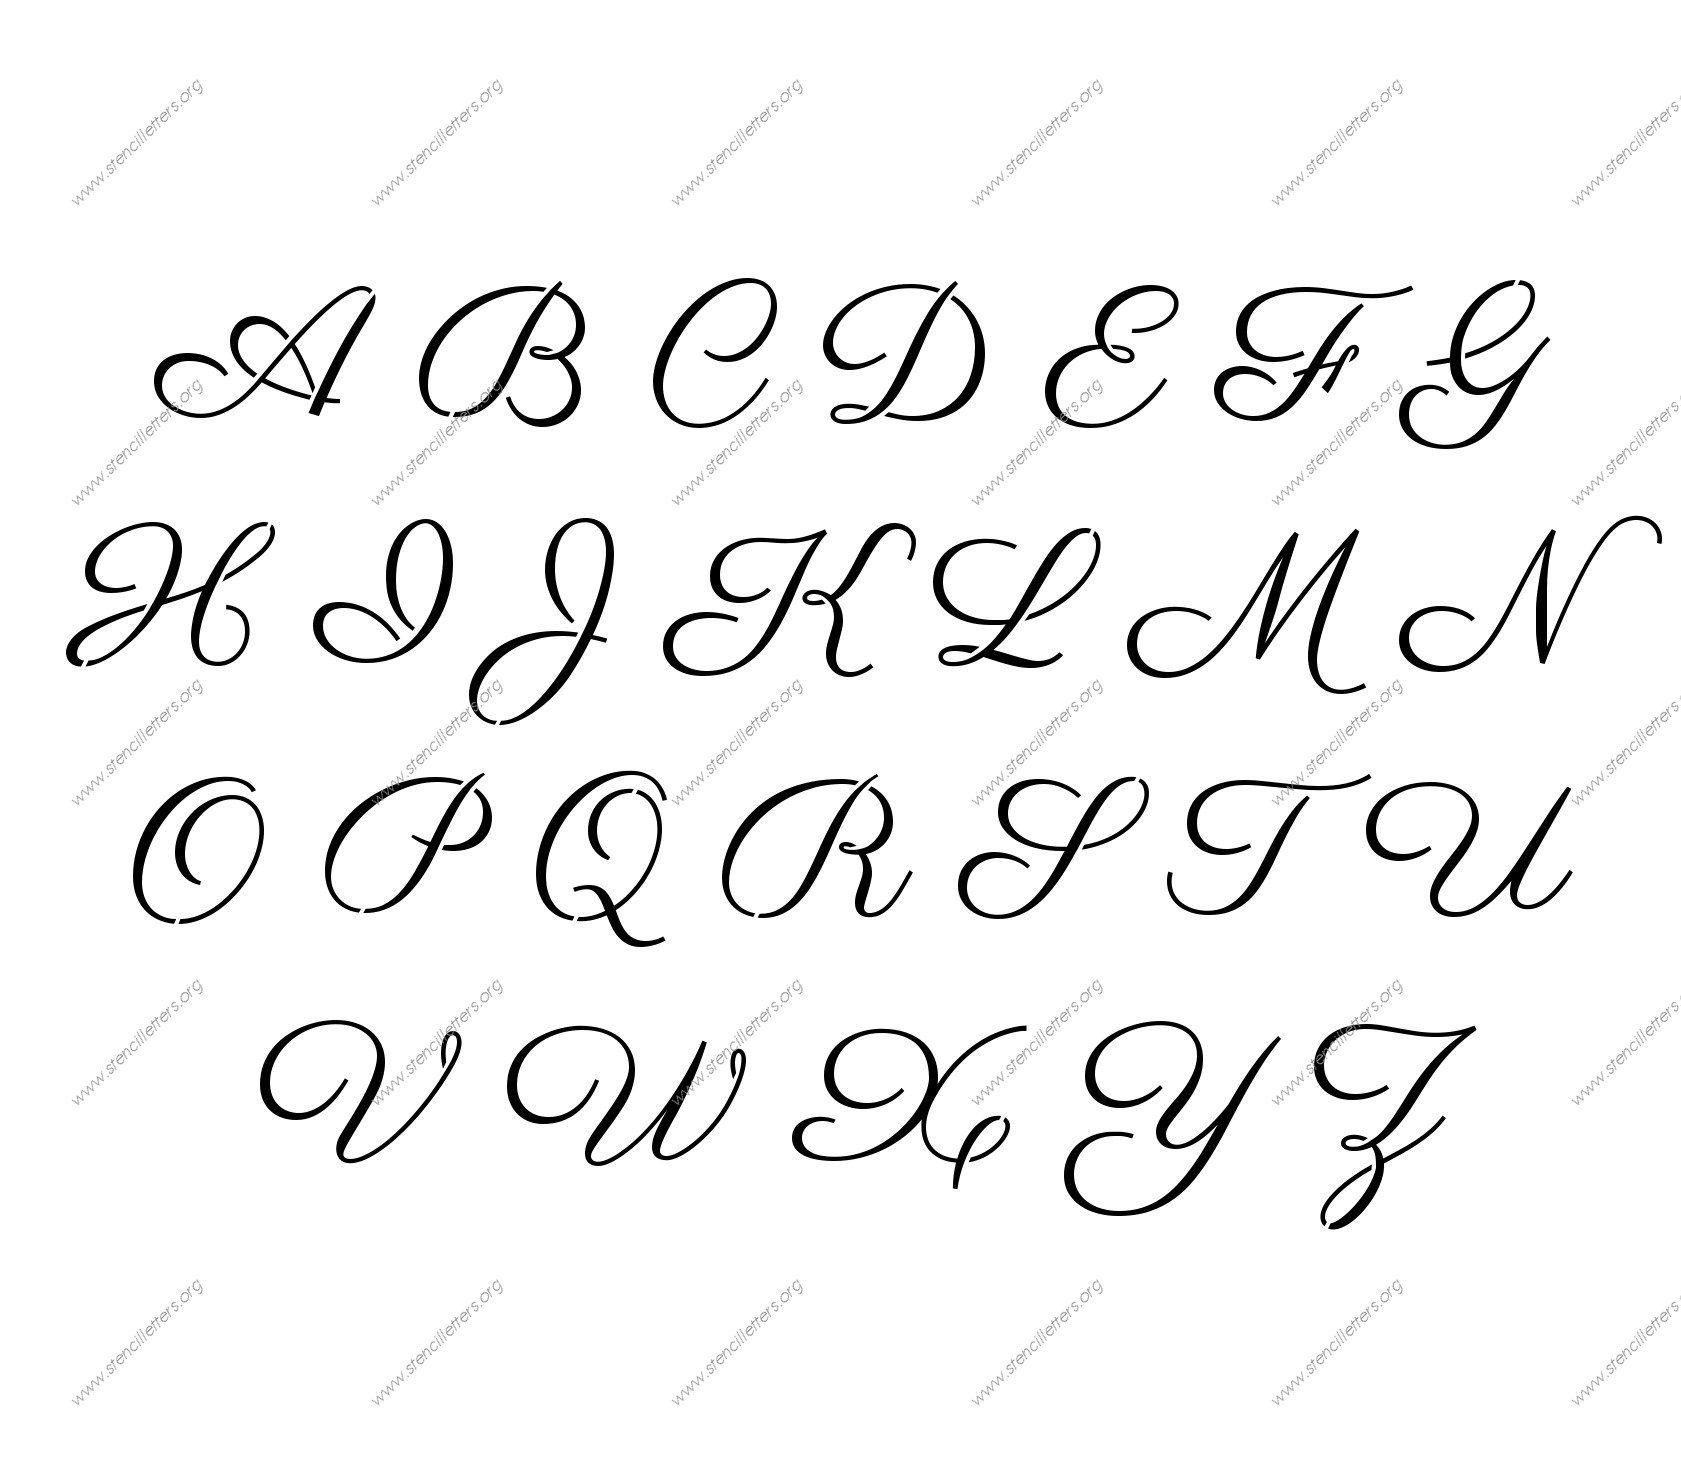 Free Printable Alphabet Stencil Letters Template | Art & Crafts - Free Printable Calligraphy Letter Stencils